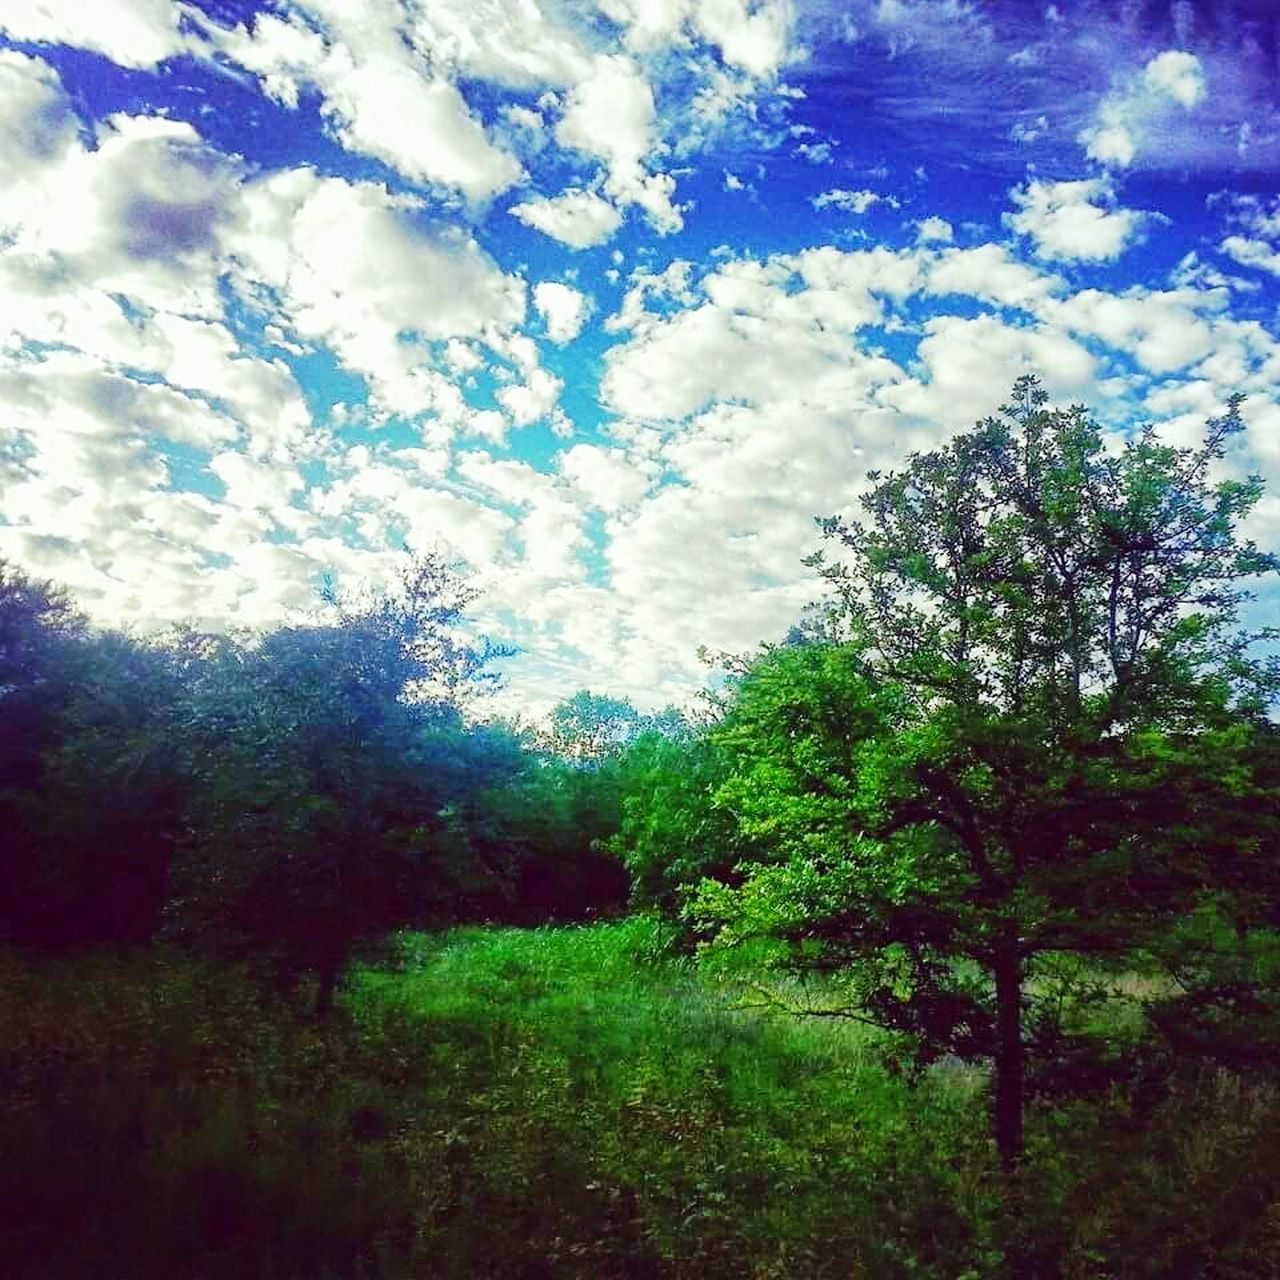 nature, beauty in nature, tree, tranquility, day, sky, growth, scenics, no people, tranquil scene, outdoors, cloud - sky, landscape, plant